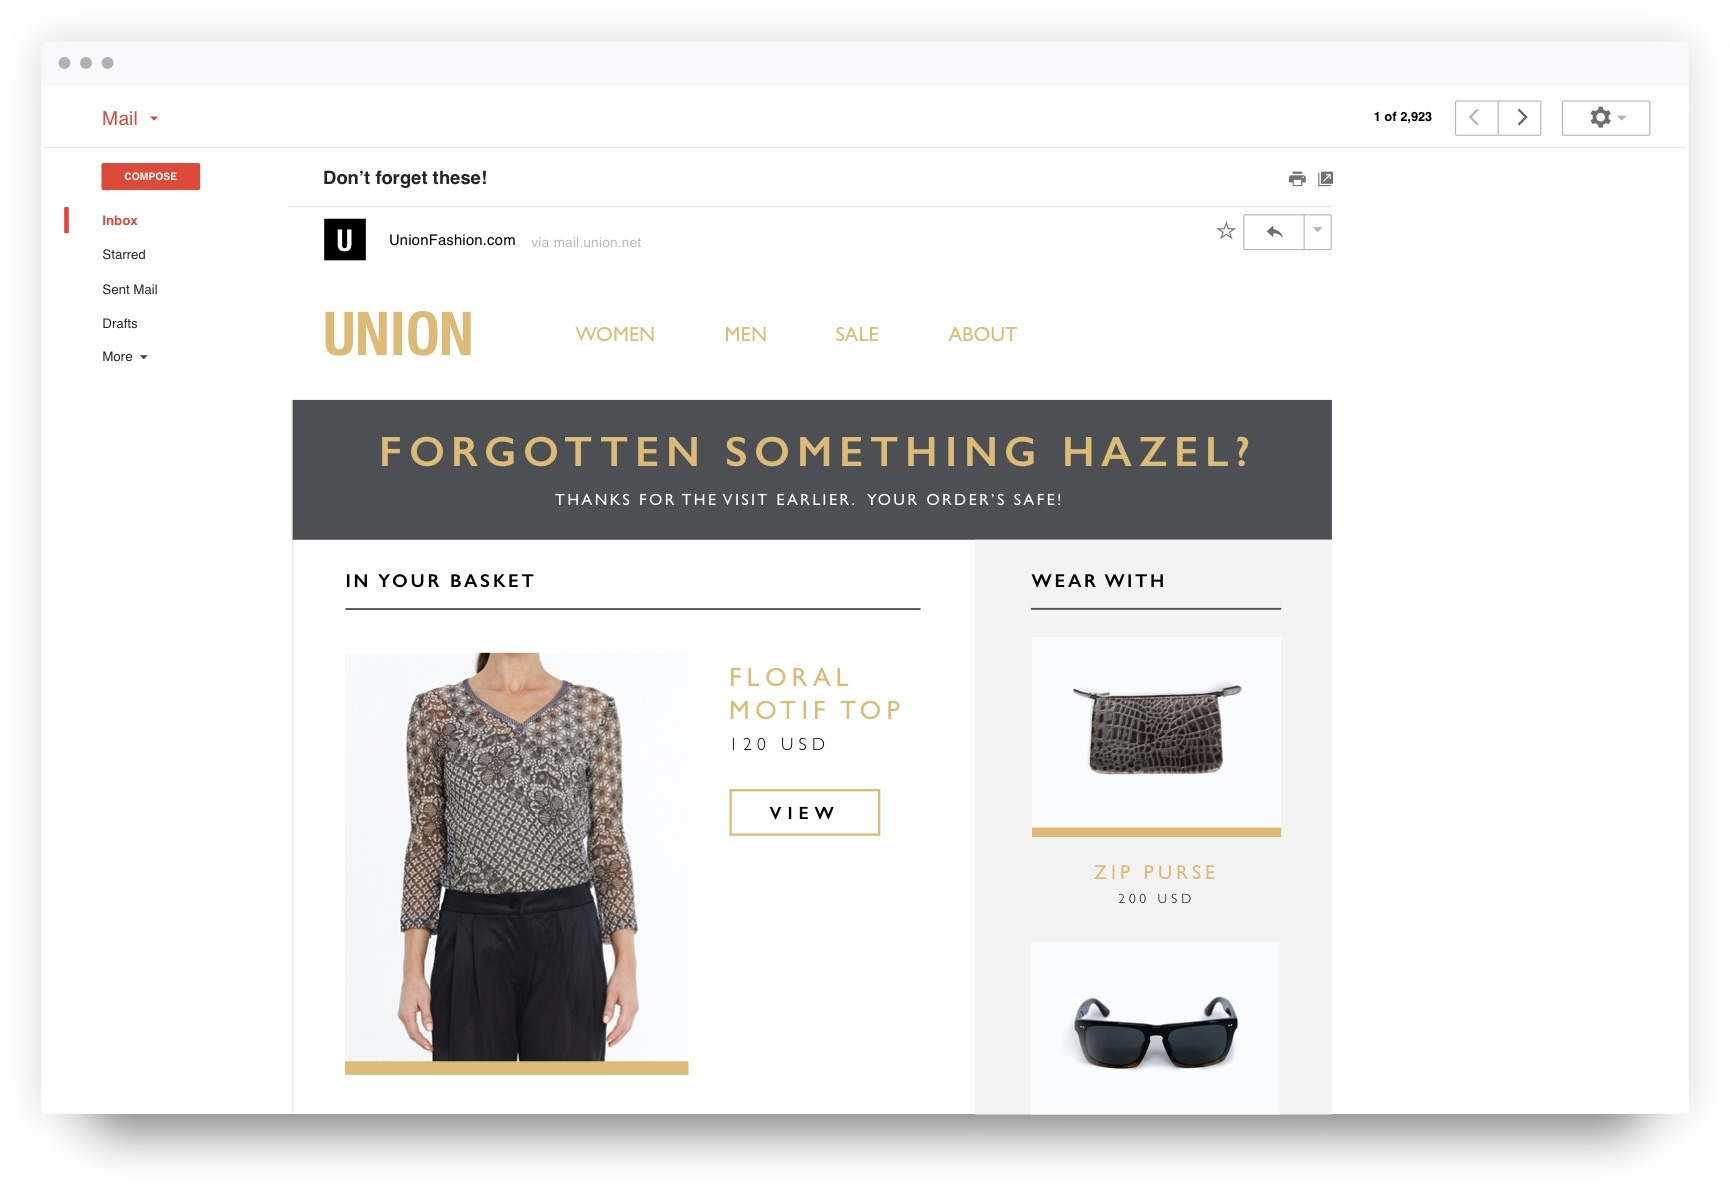 Abandonment recovery - Fashion personalization strategy